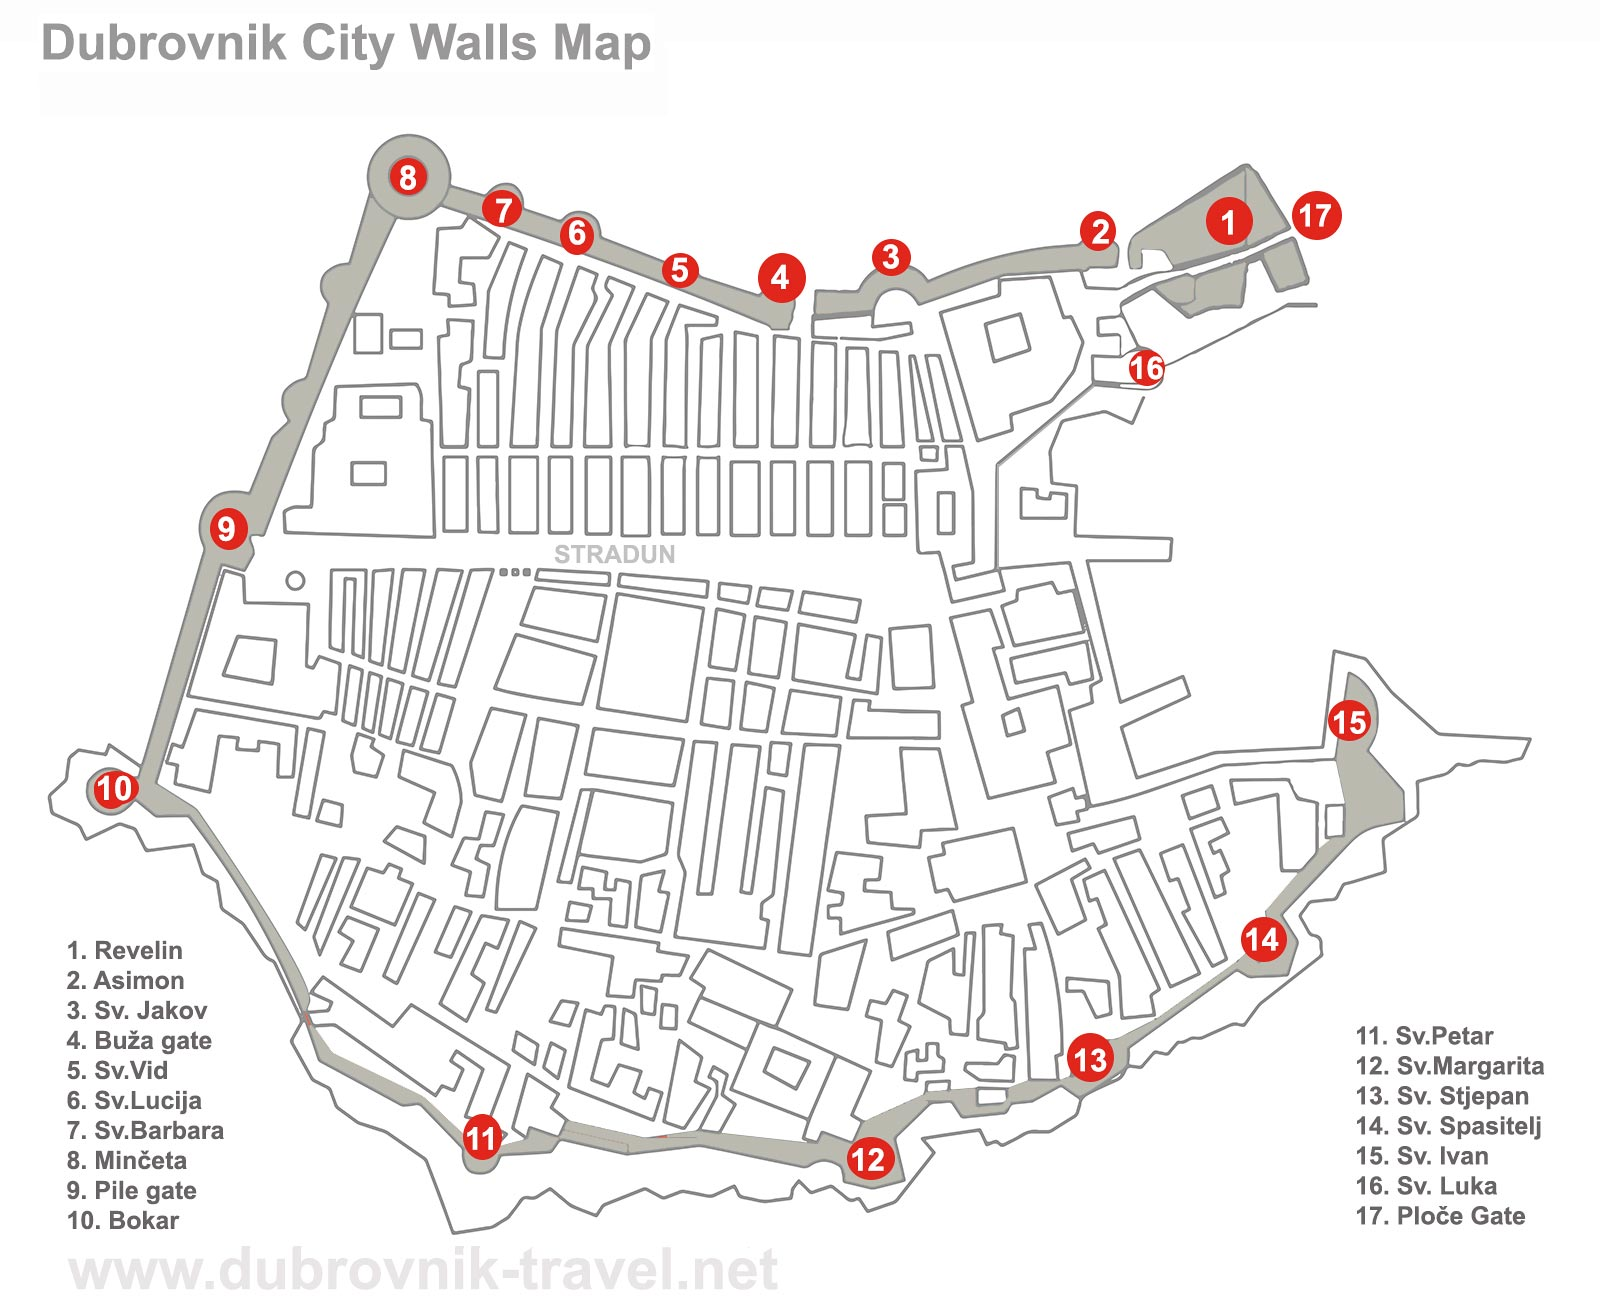 Dubrovnik City Walls Map